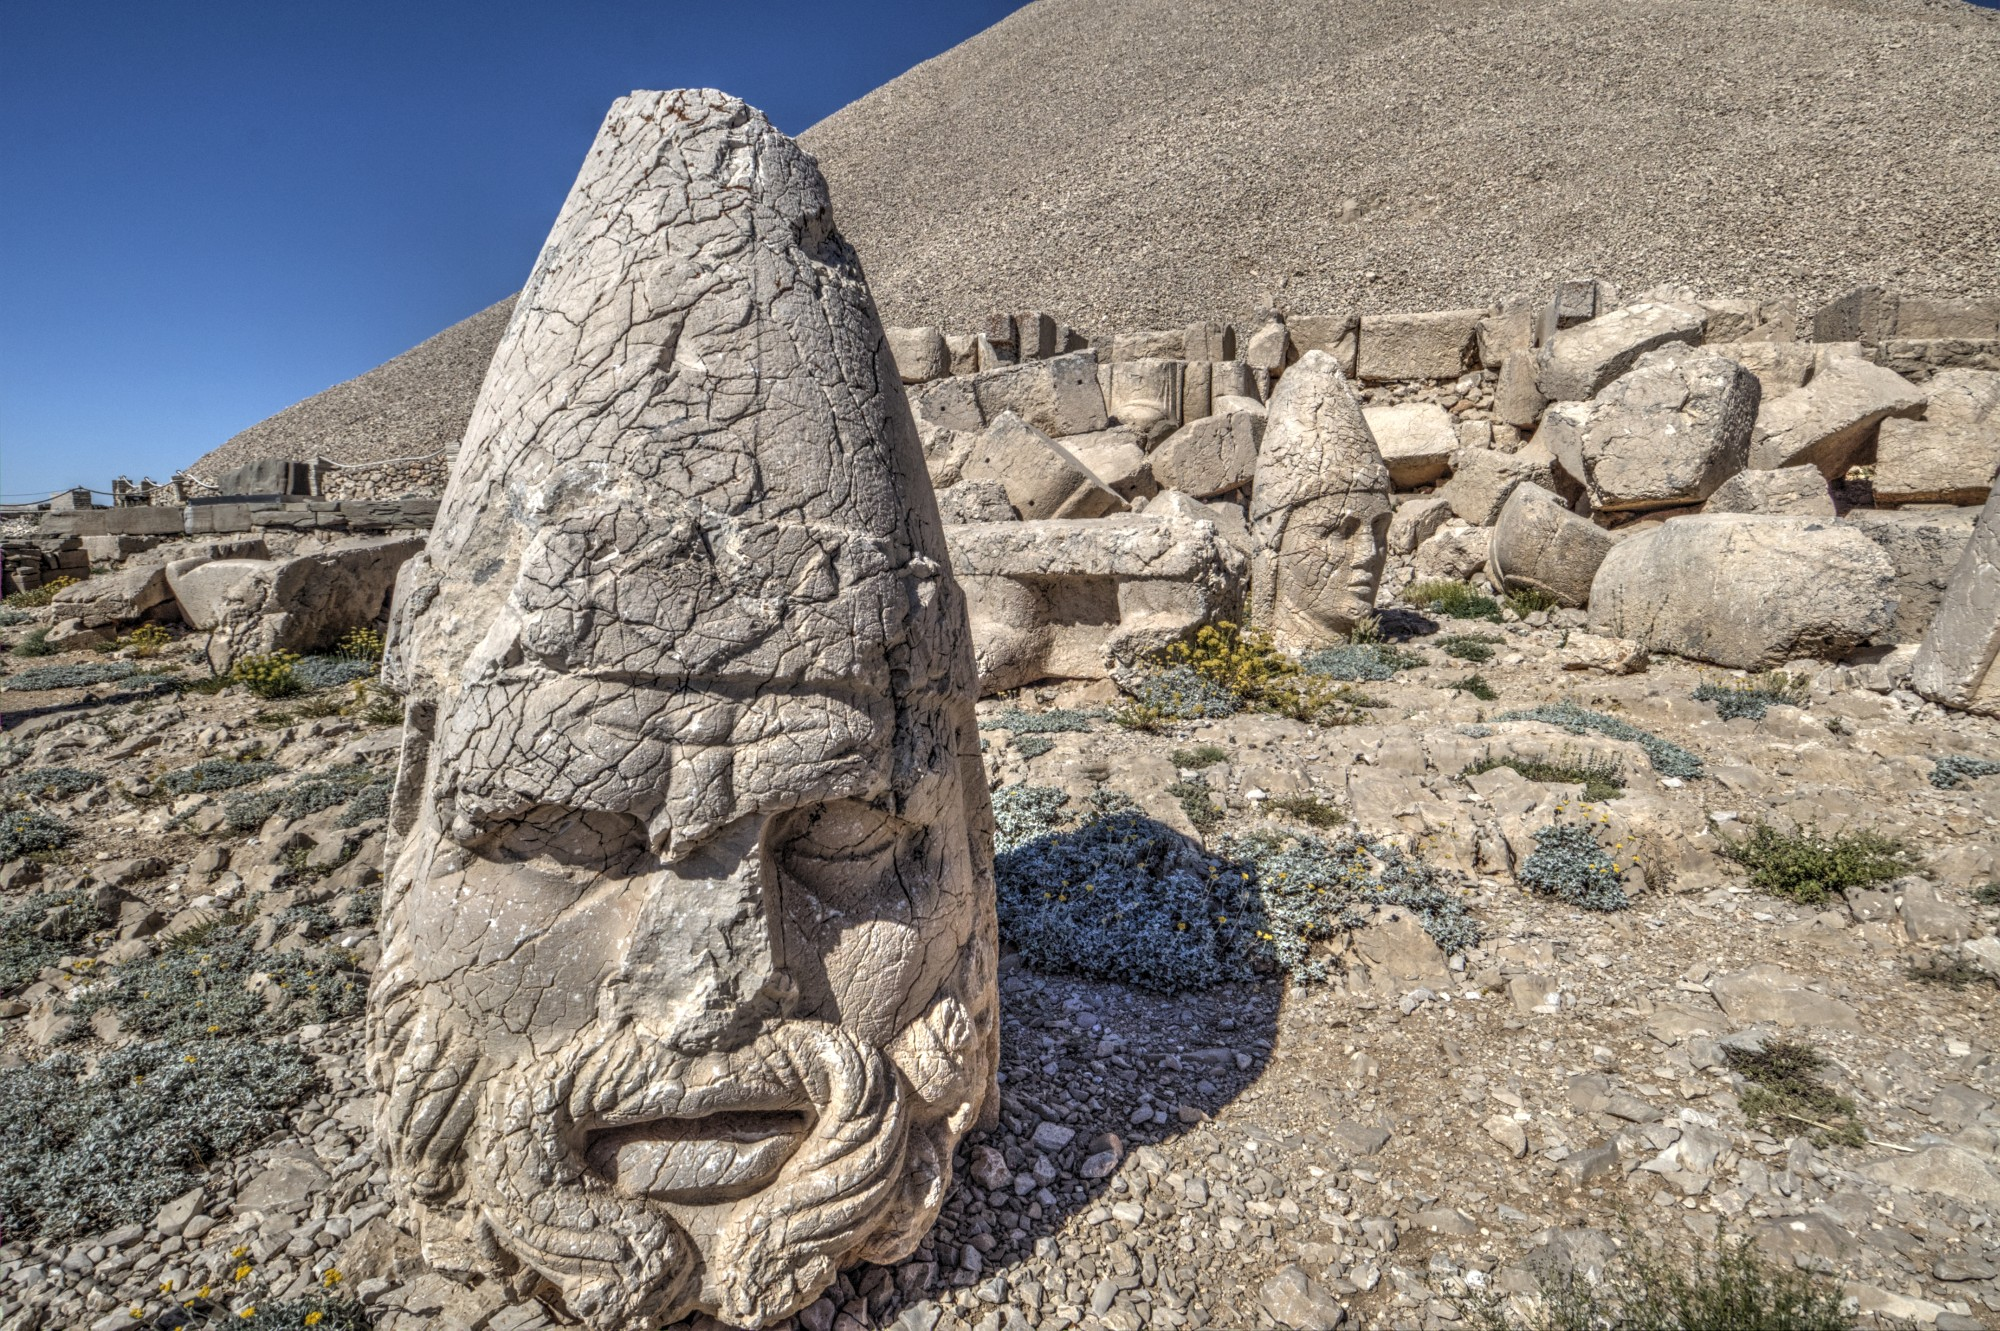 West Terrace on Mount Nemrut, the head of Zeus